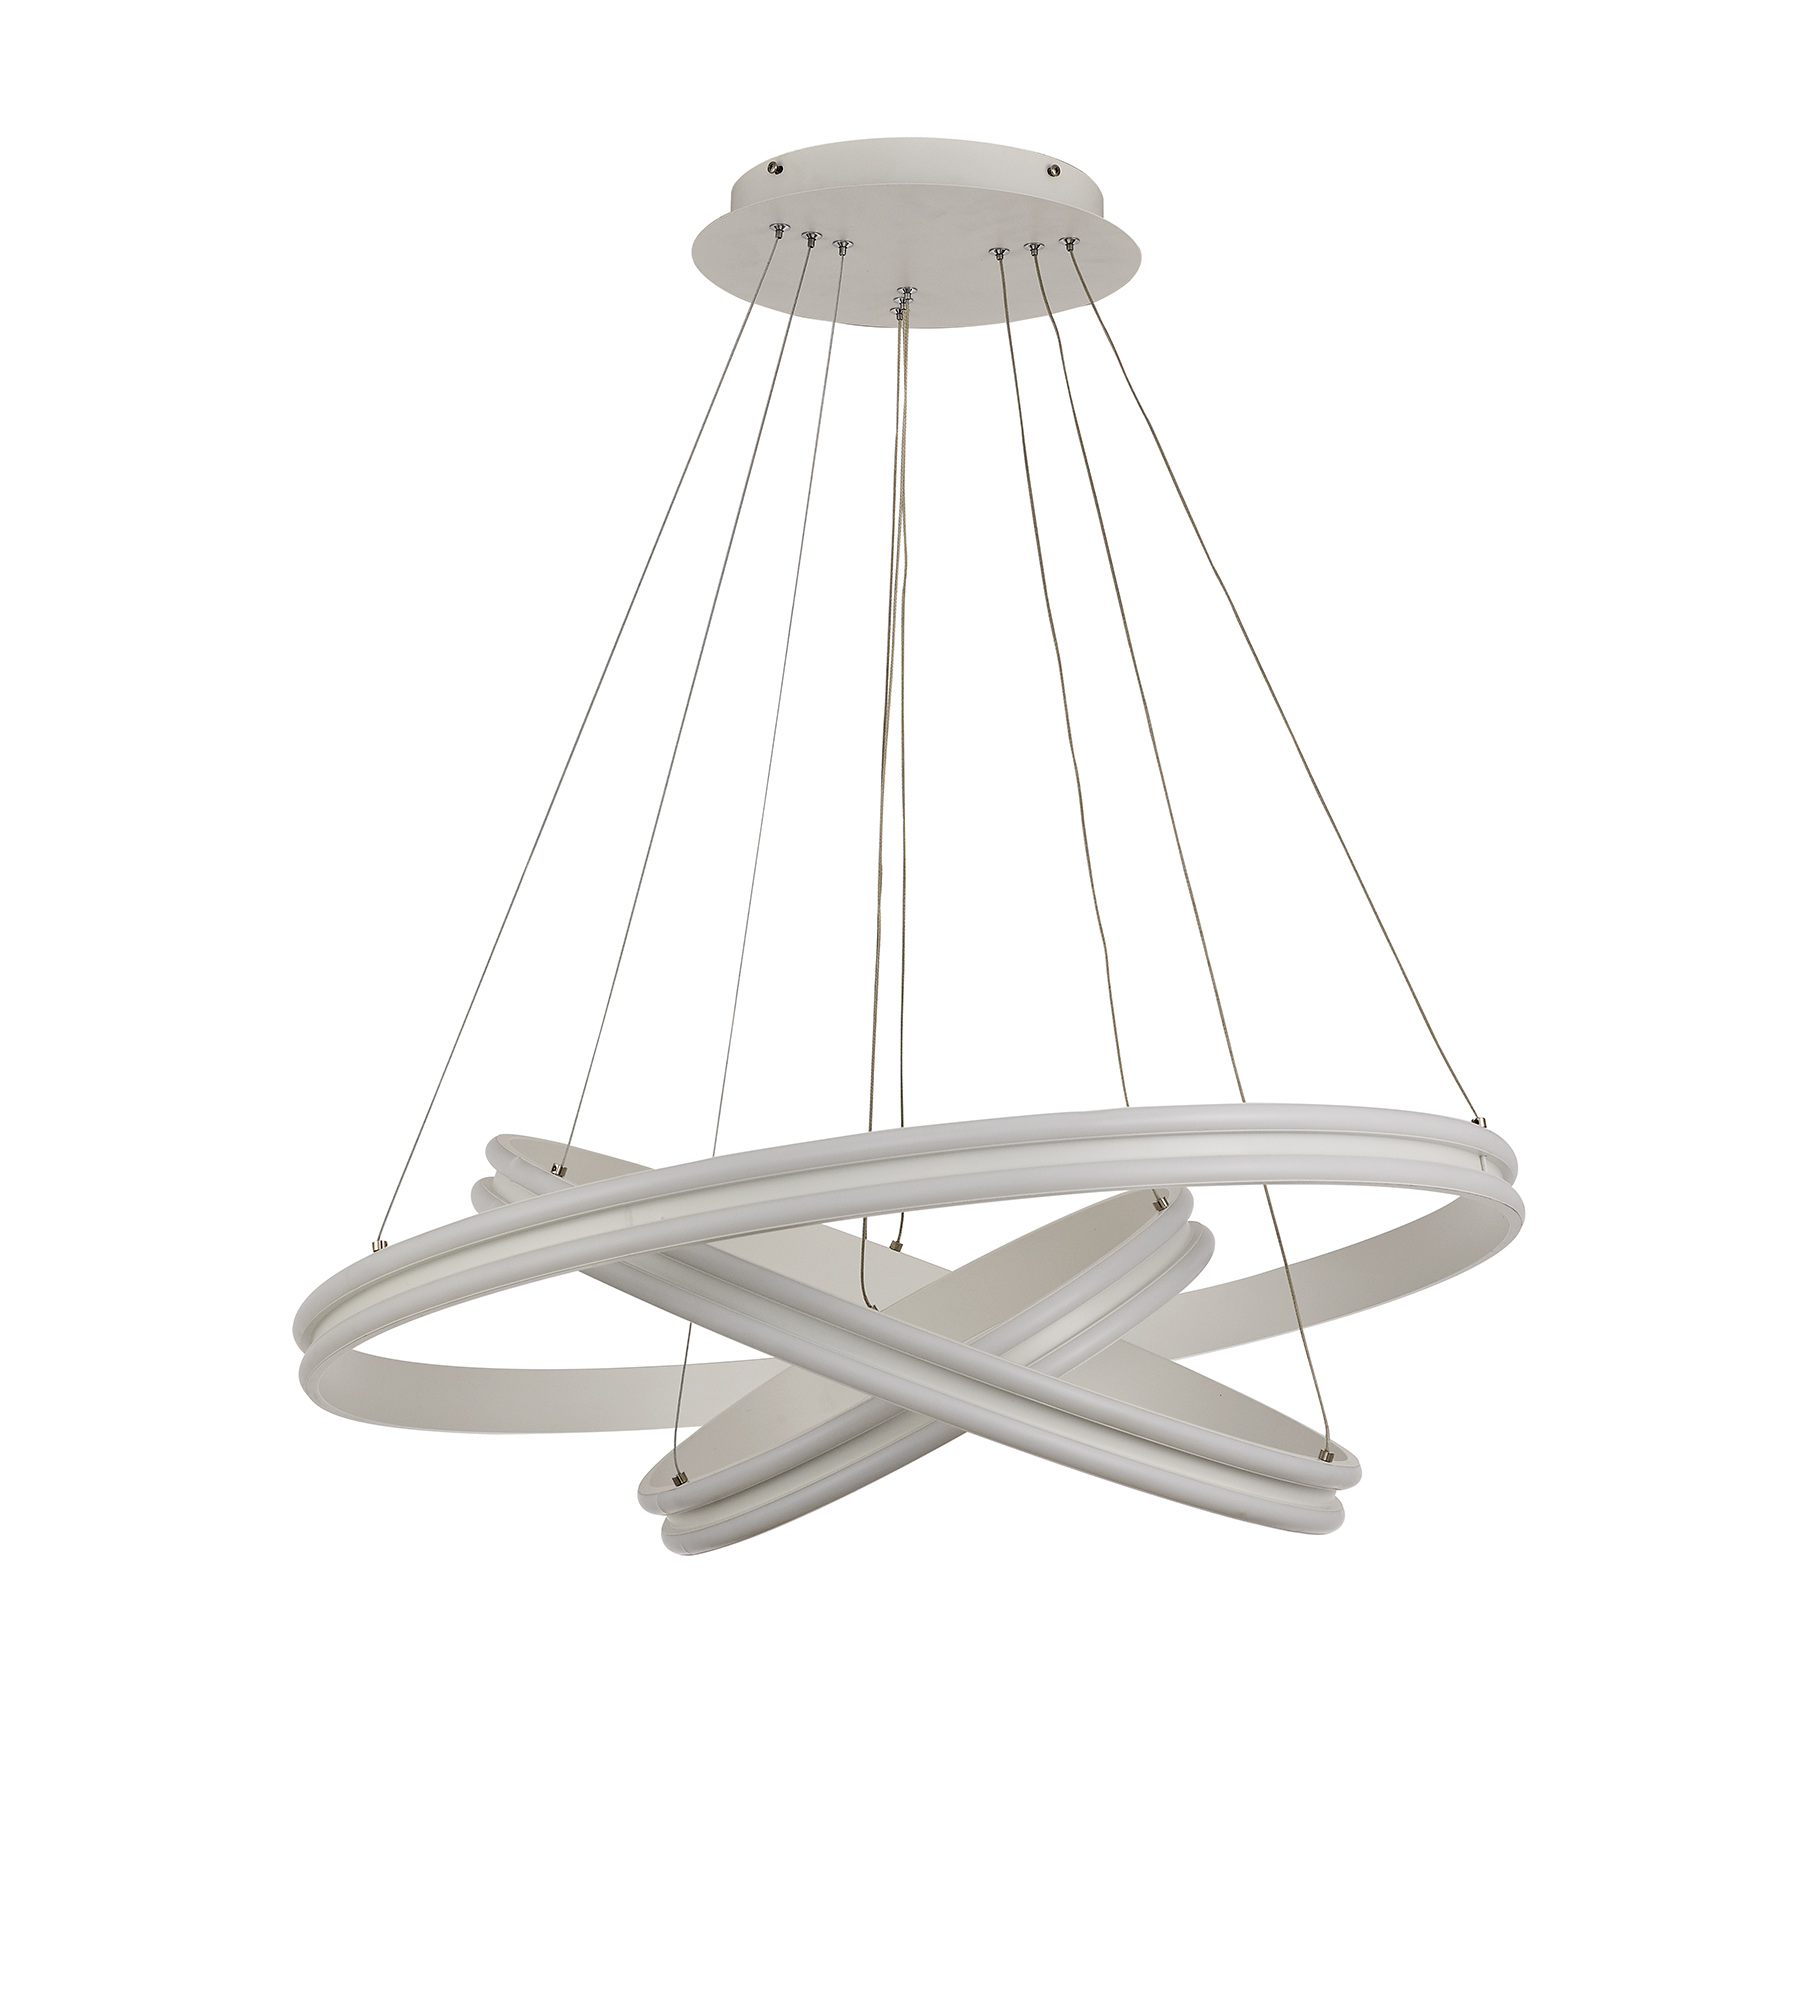 Pendant, 3 Light 50W,30W,20W LED, 4000K, 5470lm, Dimmable, Matt White, 3yrs Warranty